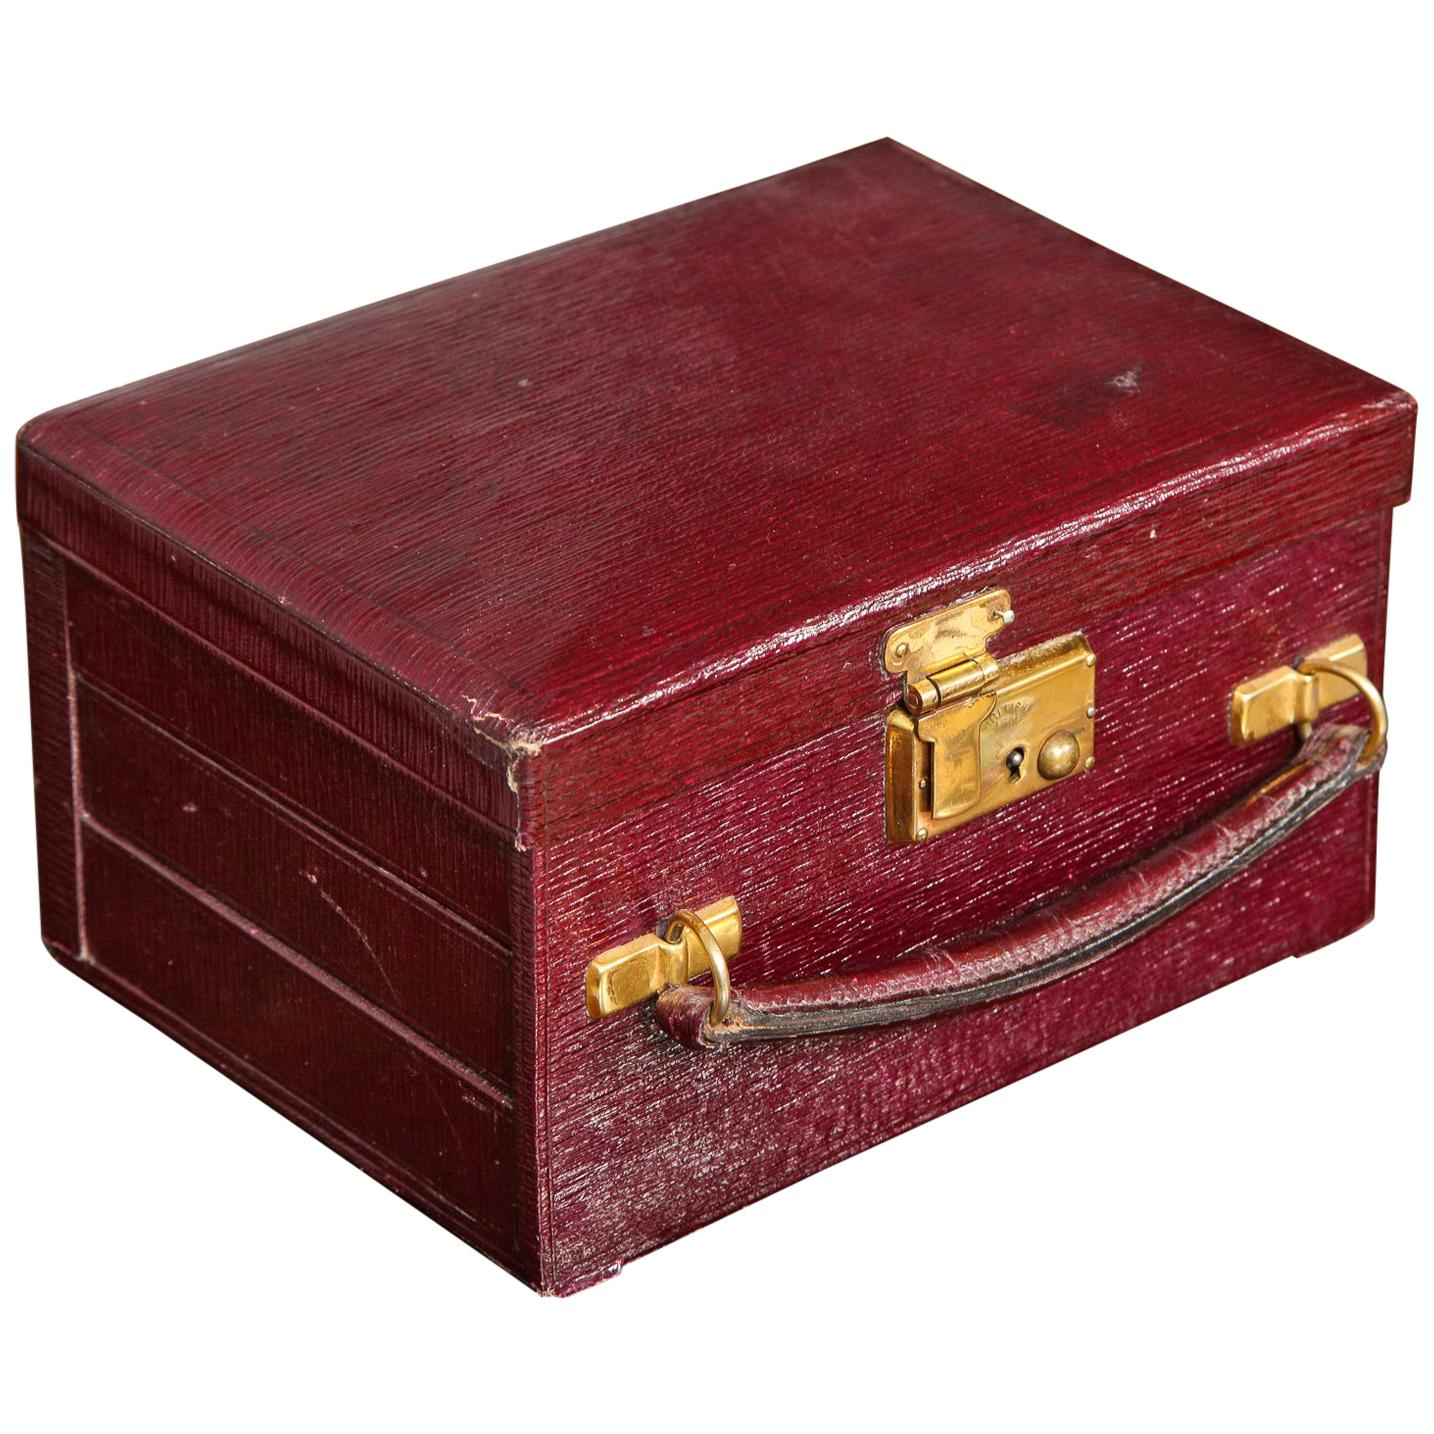 240acacee6fa Italian Leather Jewelry Box For Sale at 1stdibs